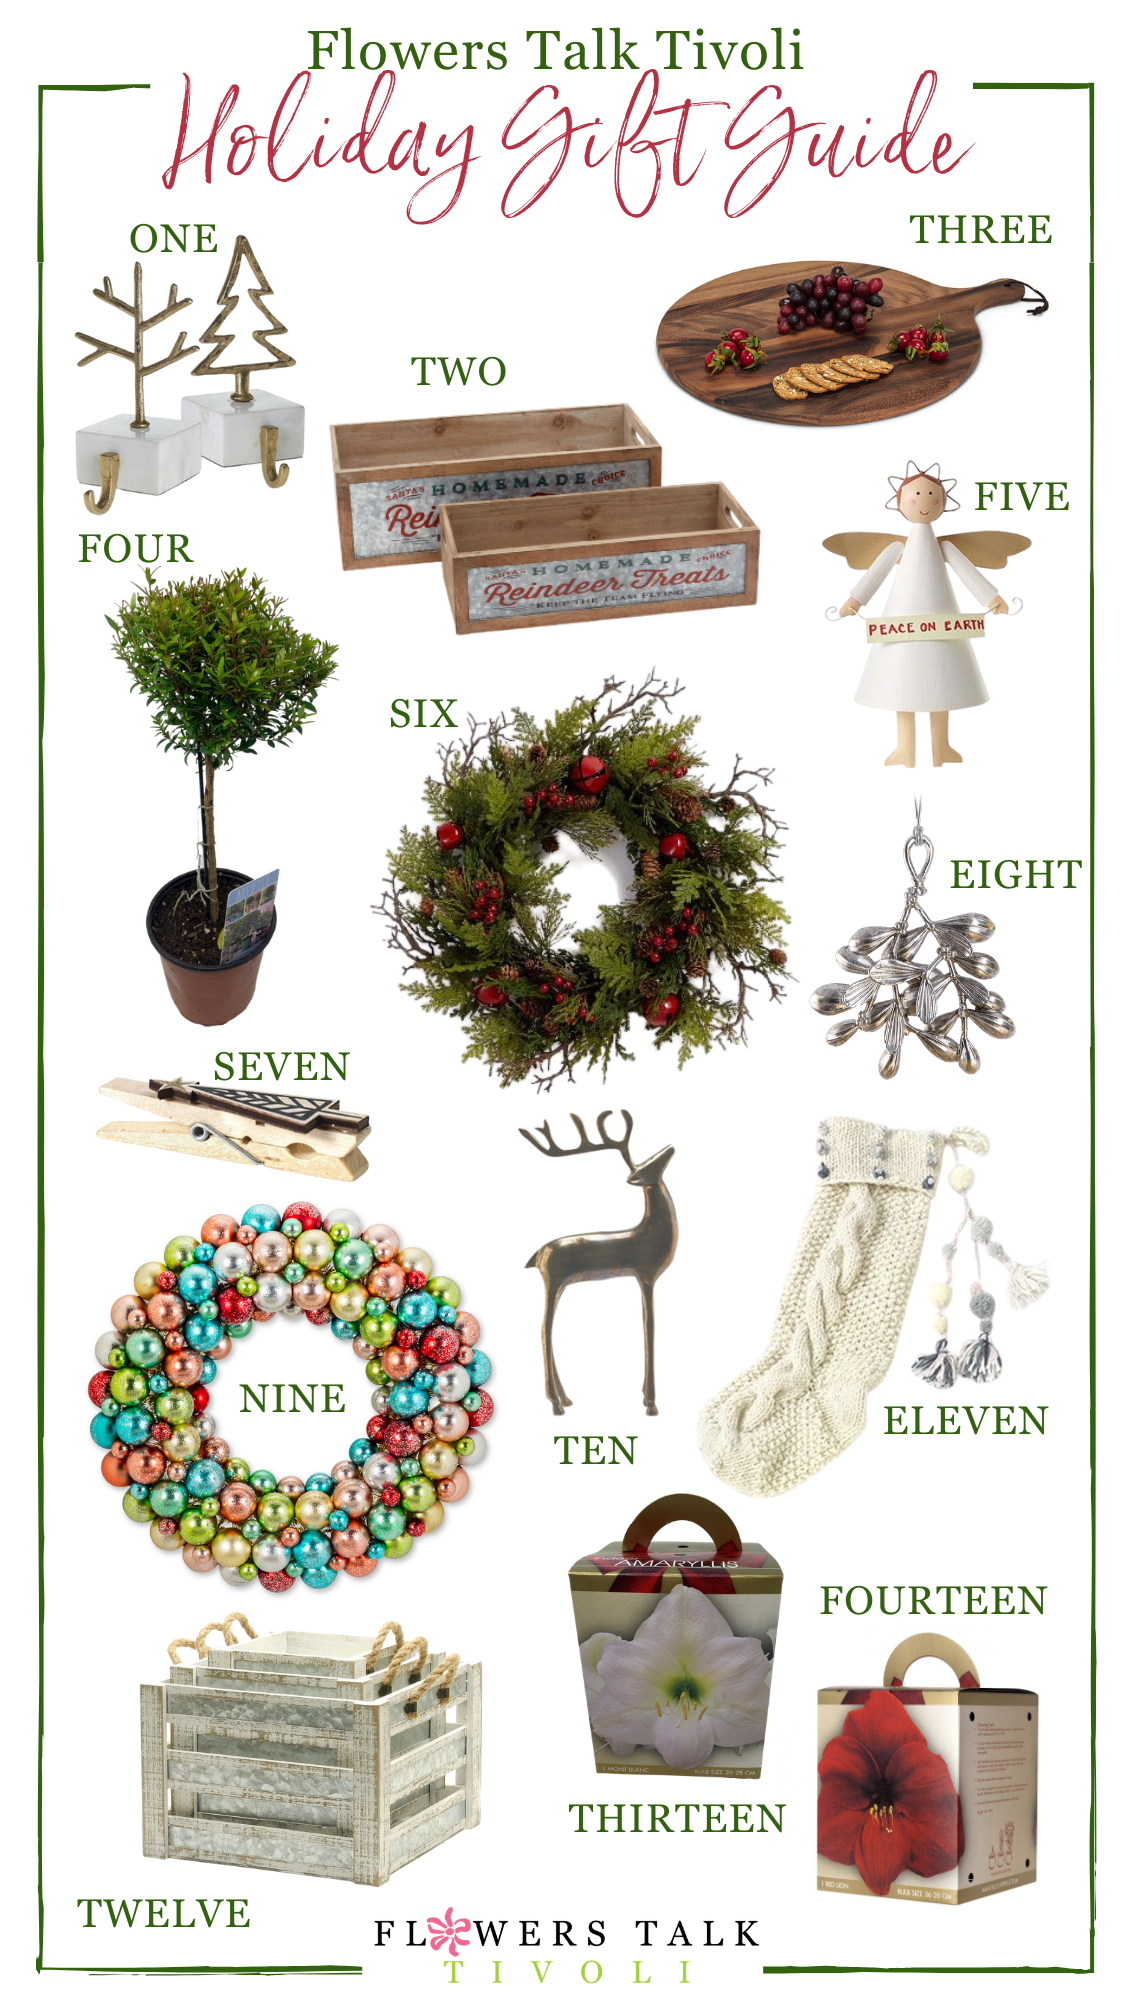 Various holiday decor items scattered across white background